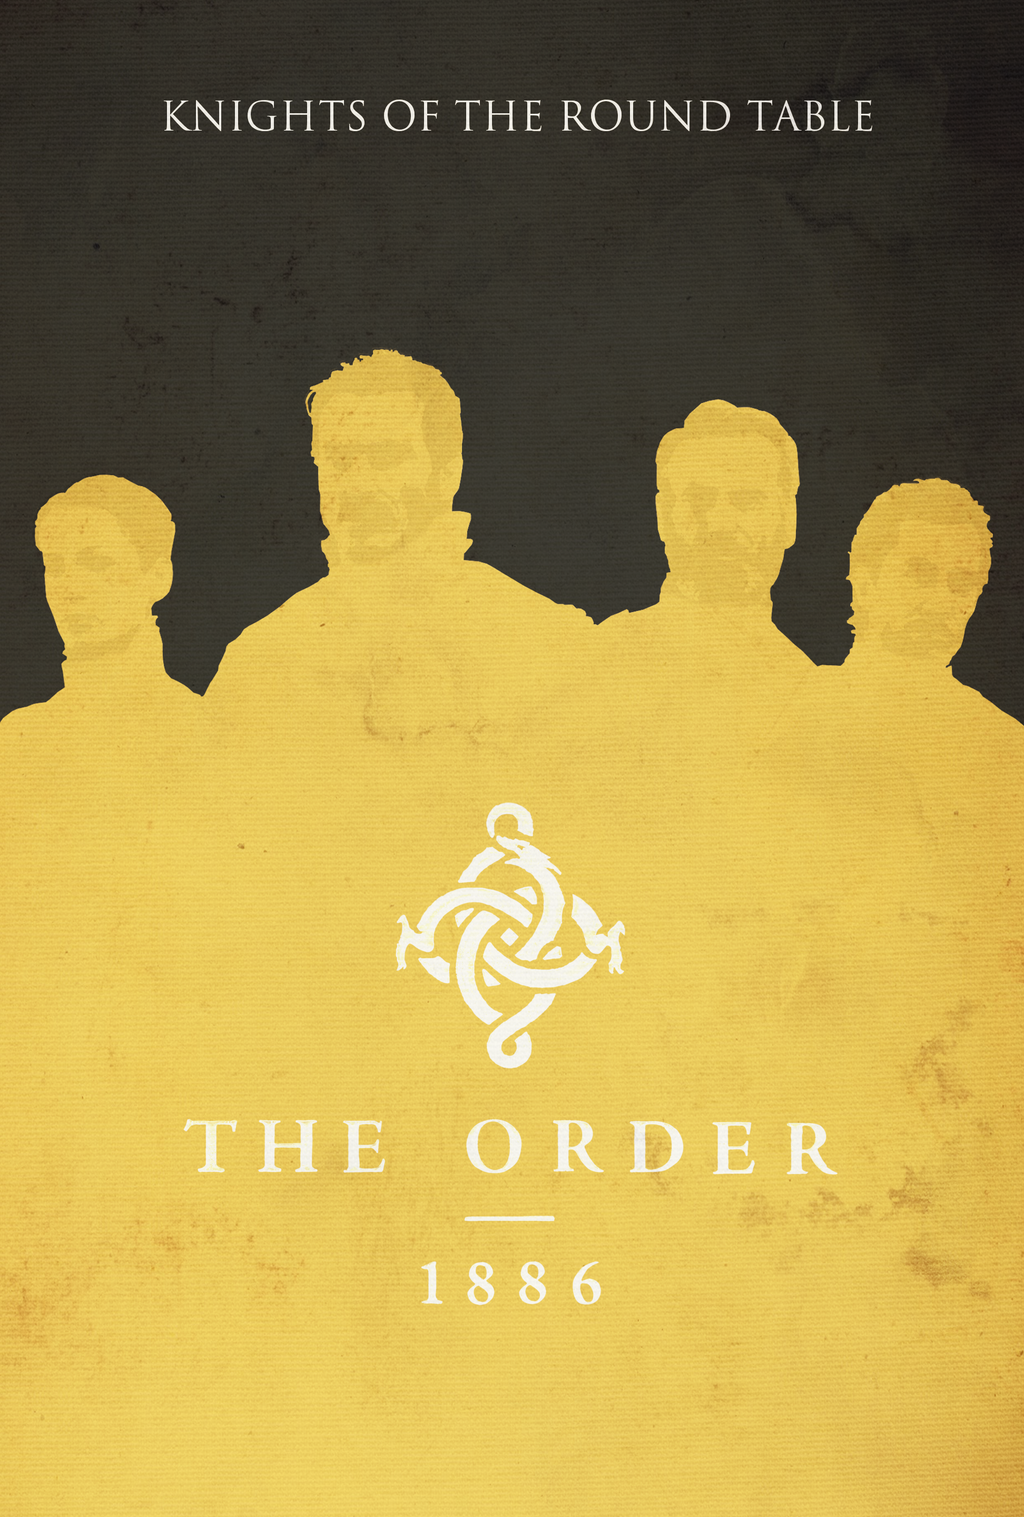 The Order 1886 Knights Of The Round Table By Shrimpy99 On